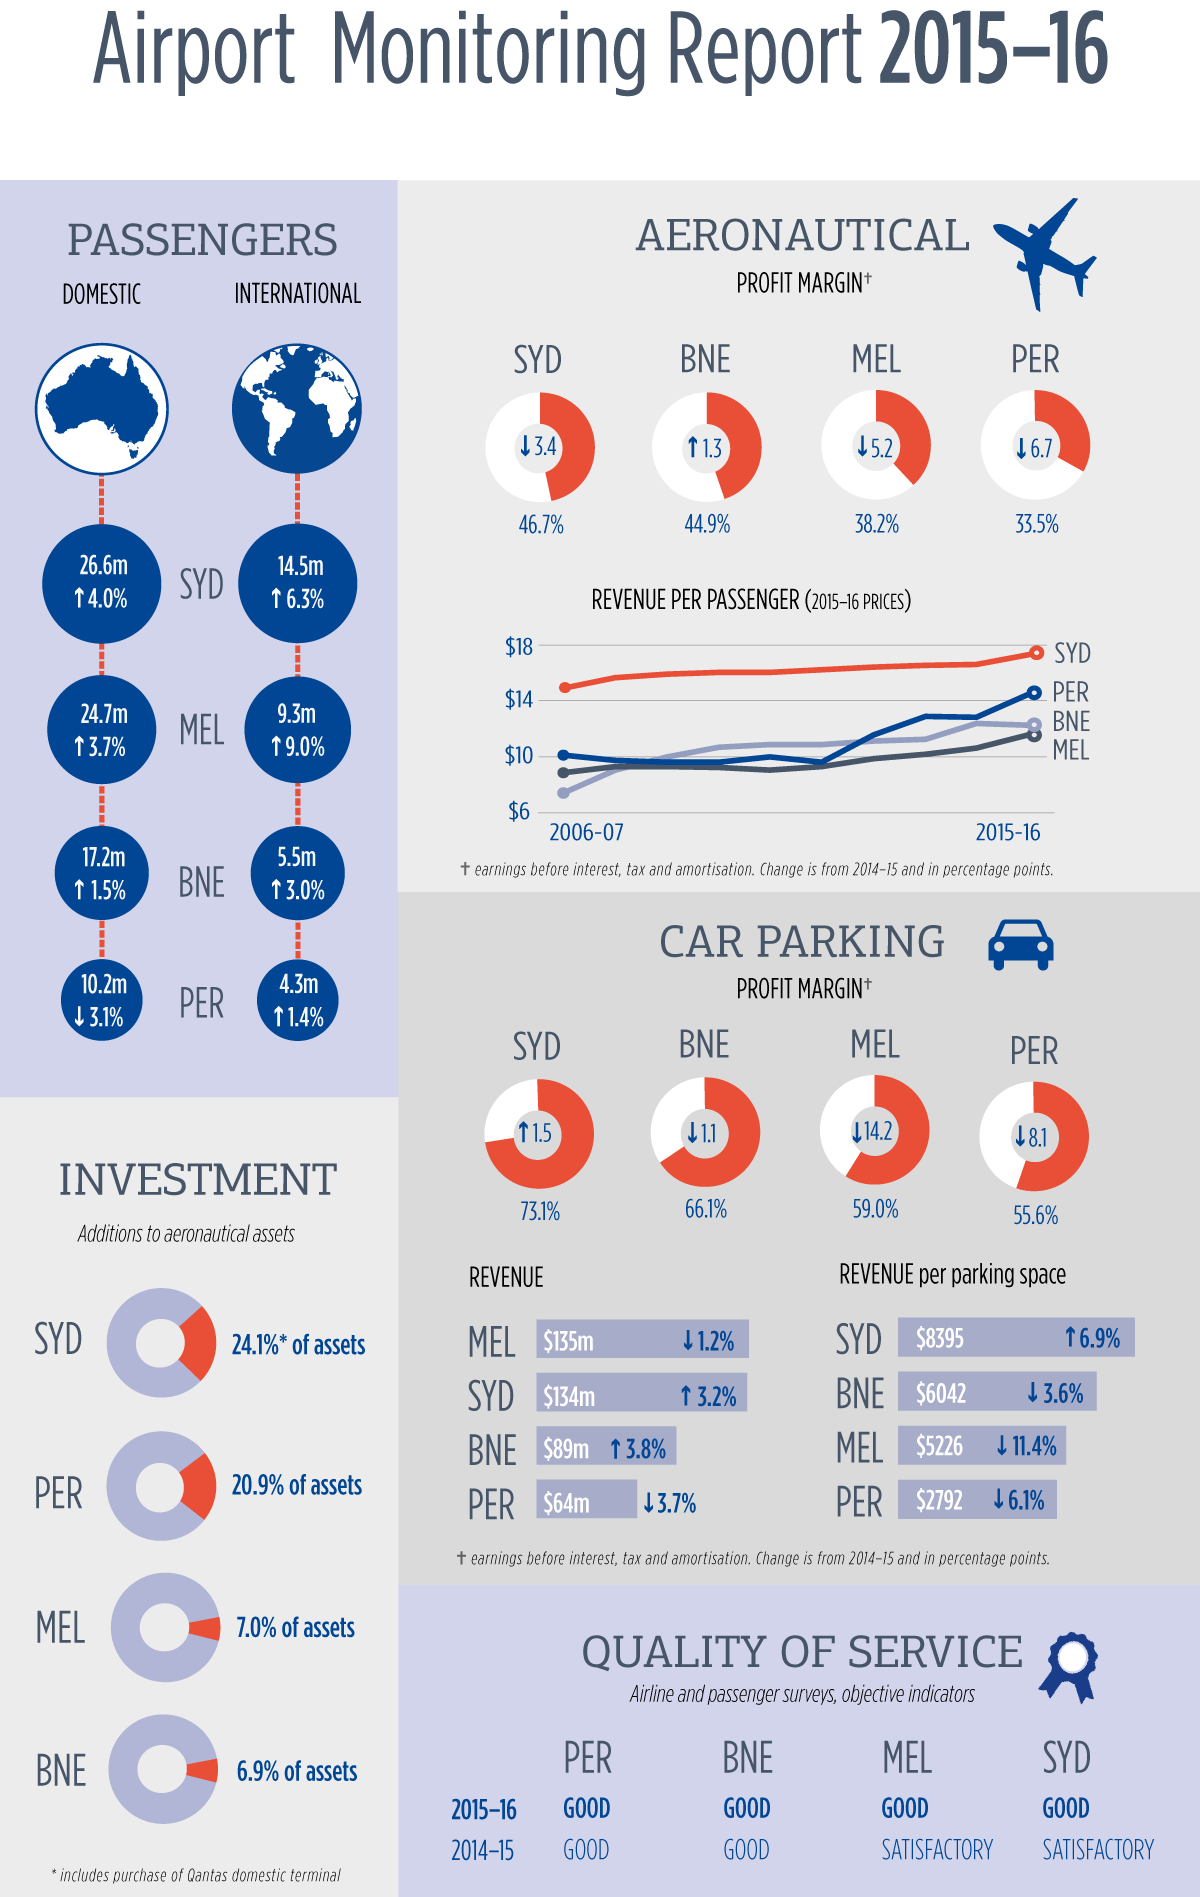 Airport monitoring report 2015-16 – Infographic